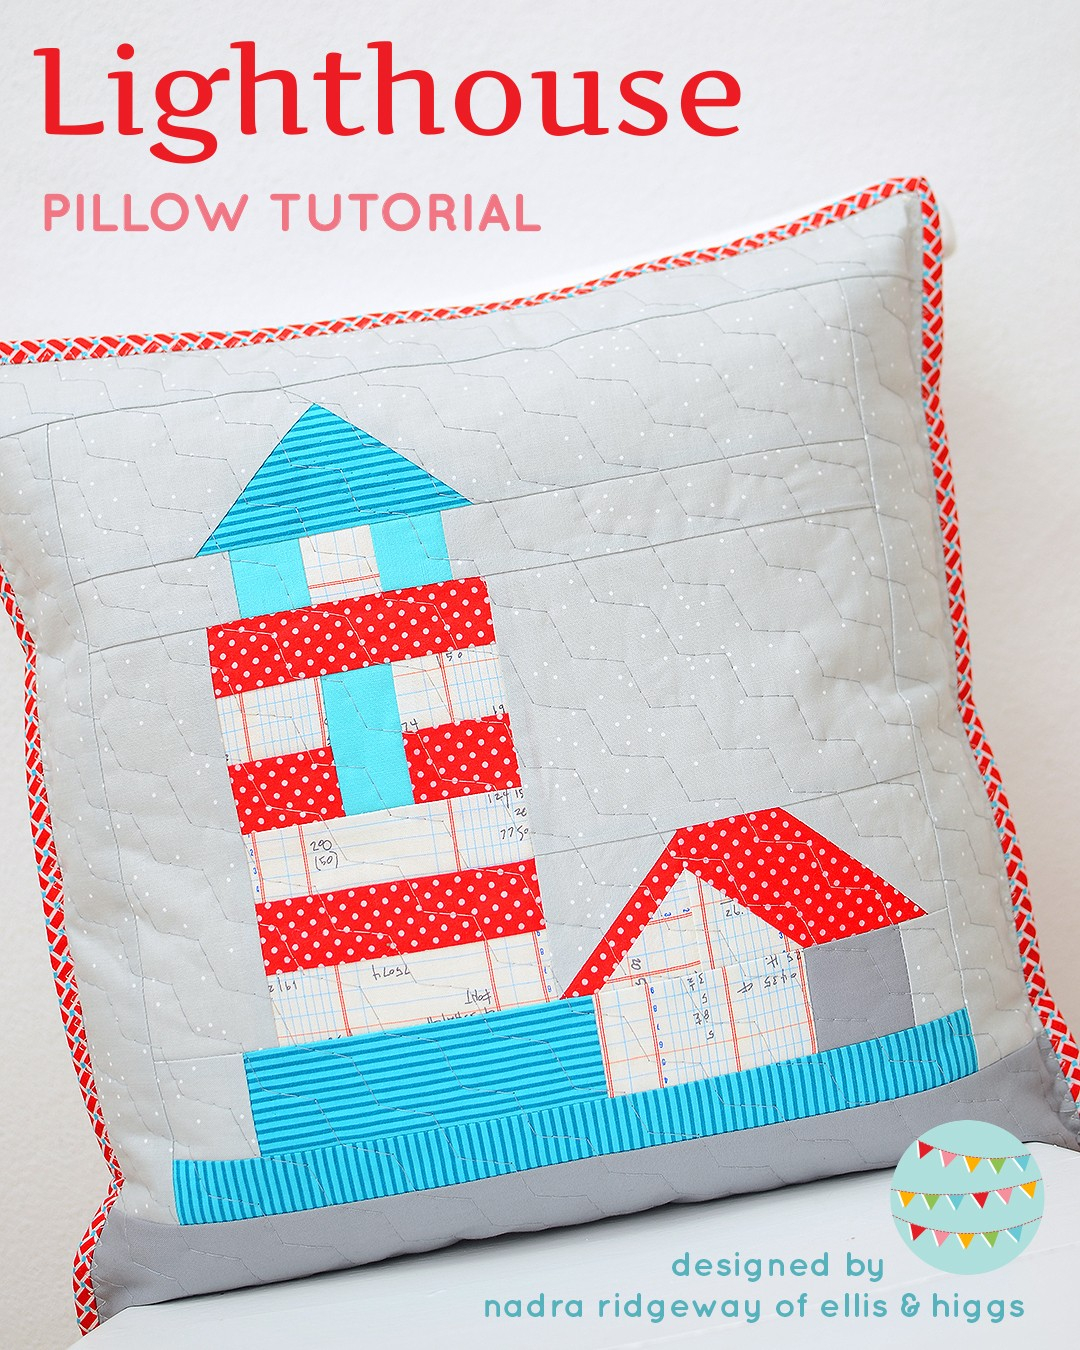 Quilted pillow with a lighthouse design